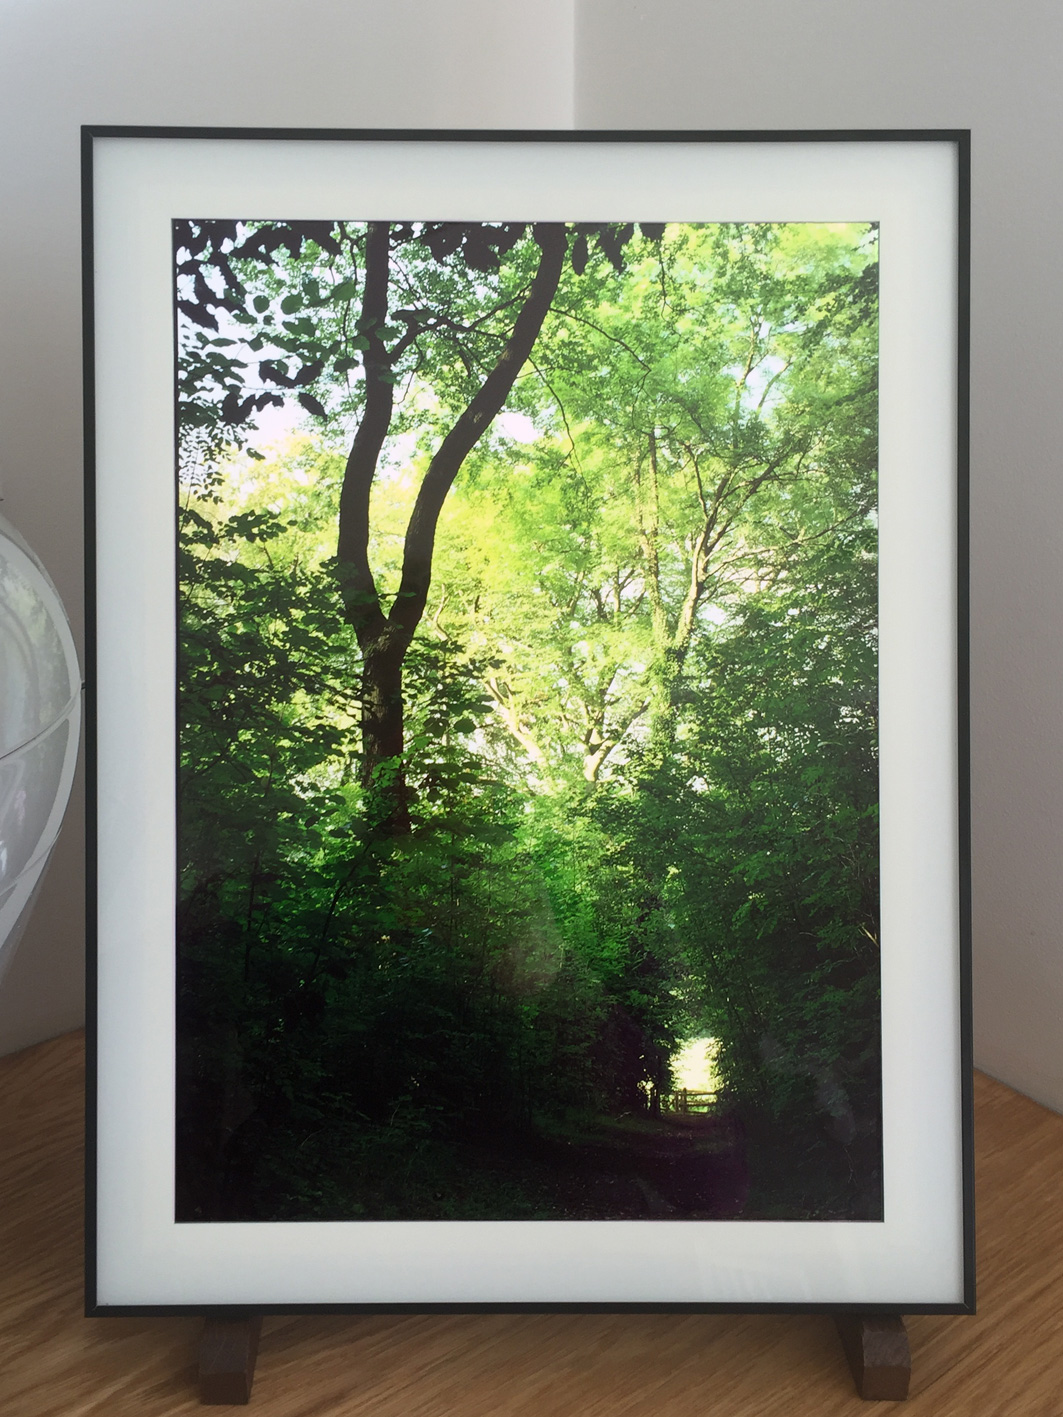 'In the Forest' series mock-up Lightbox for discussion